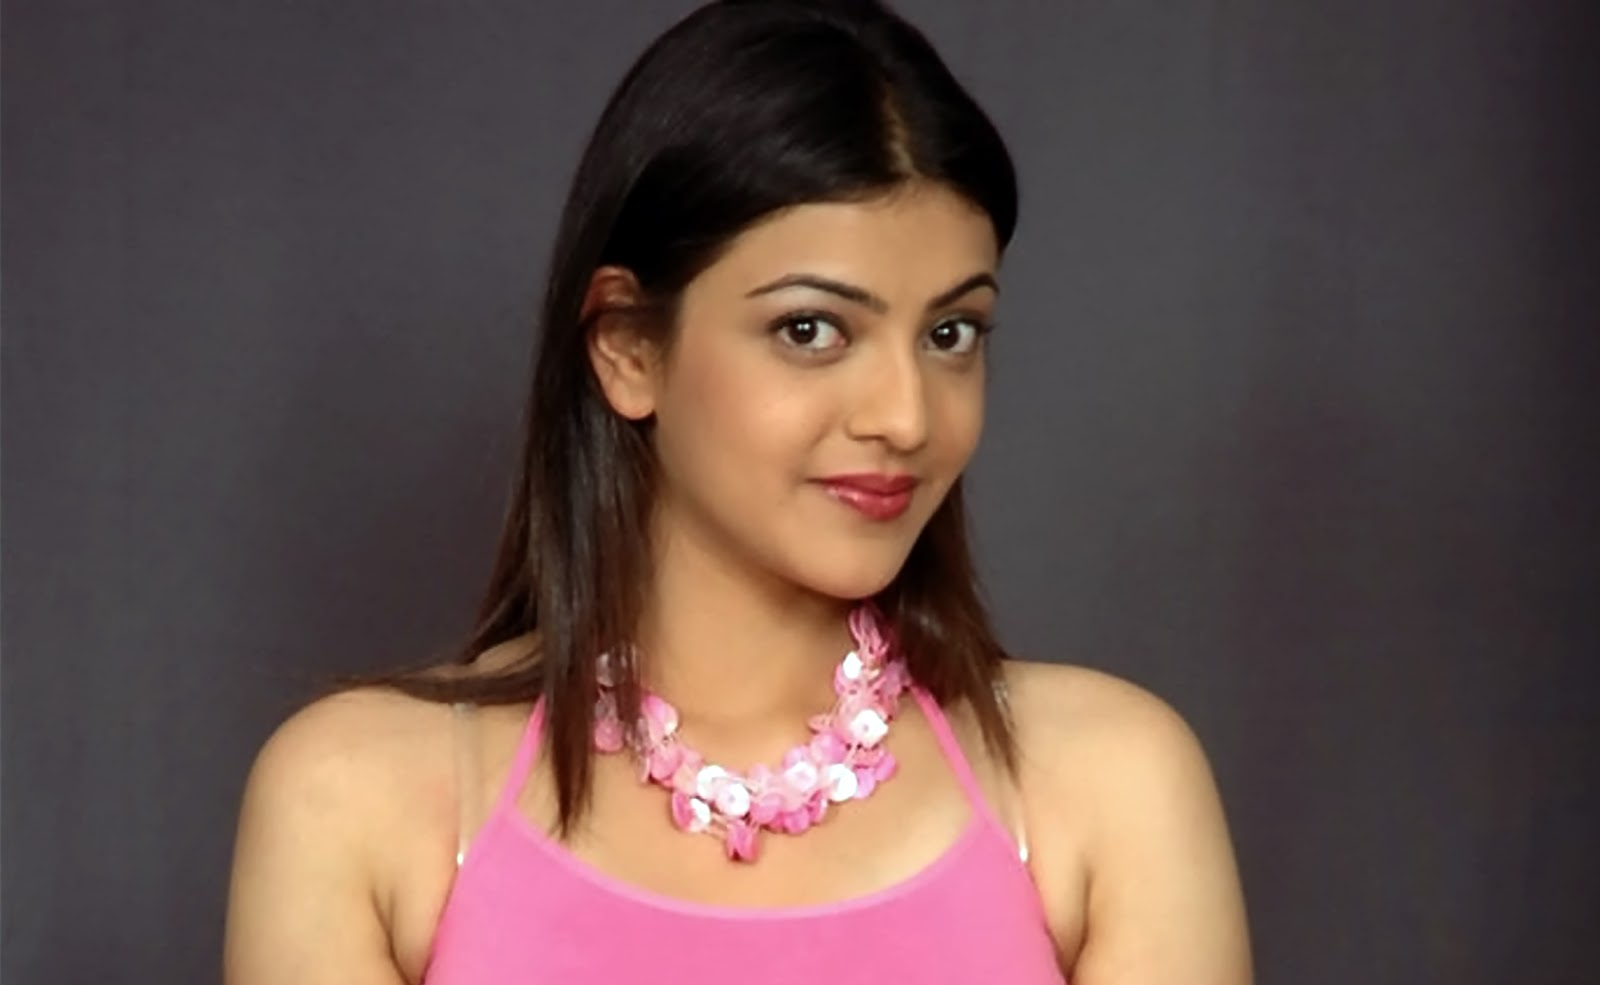 wallpapers million free visitors: kajal agarwal hot hd wallpapers